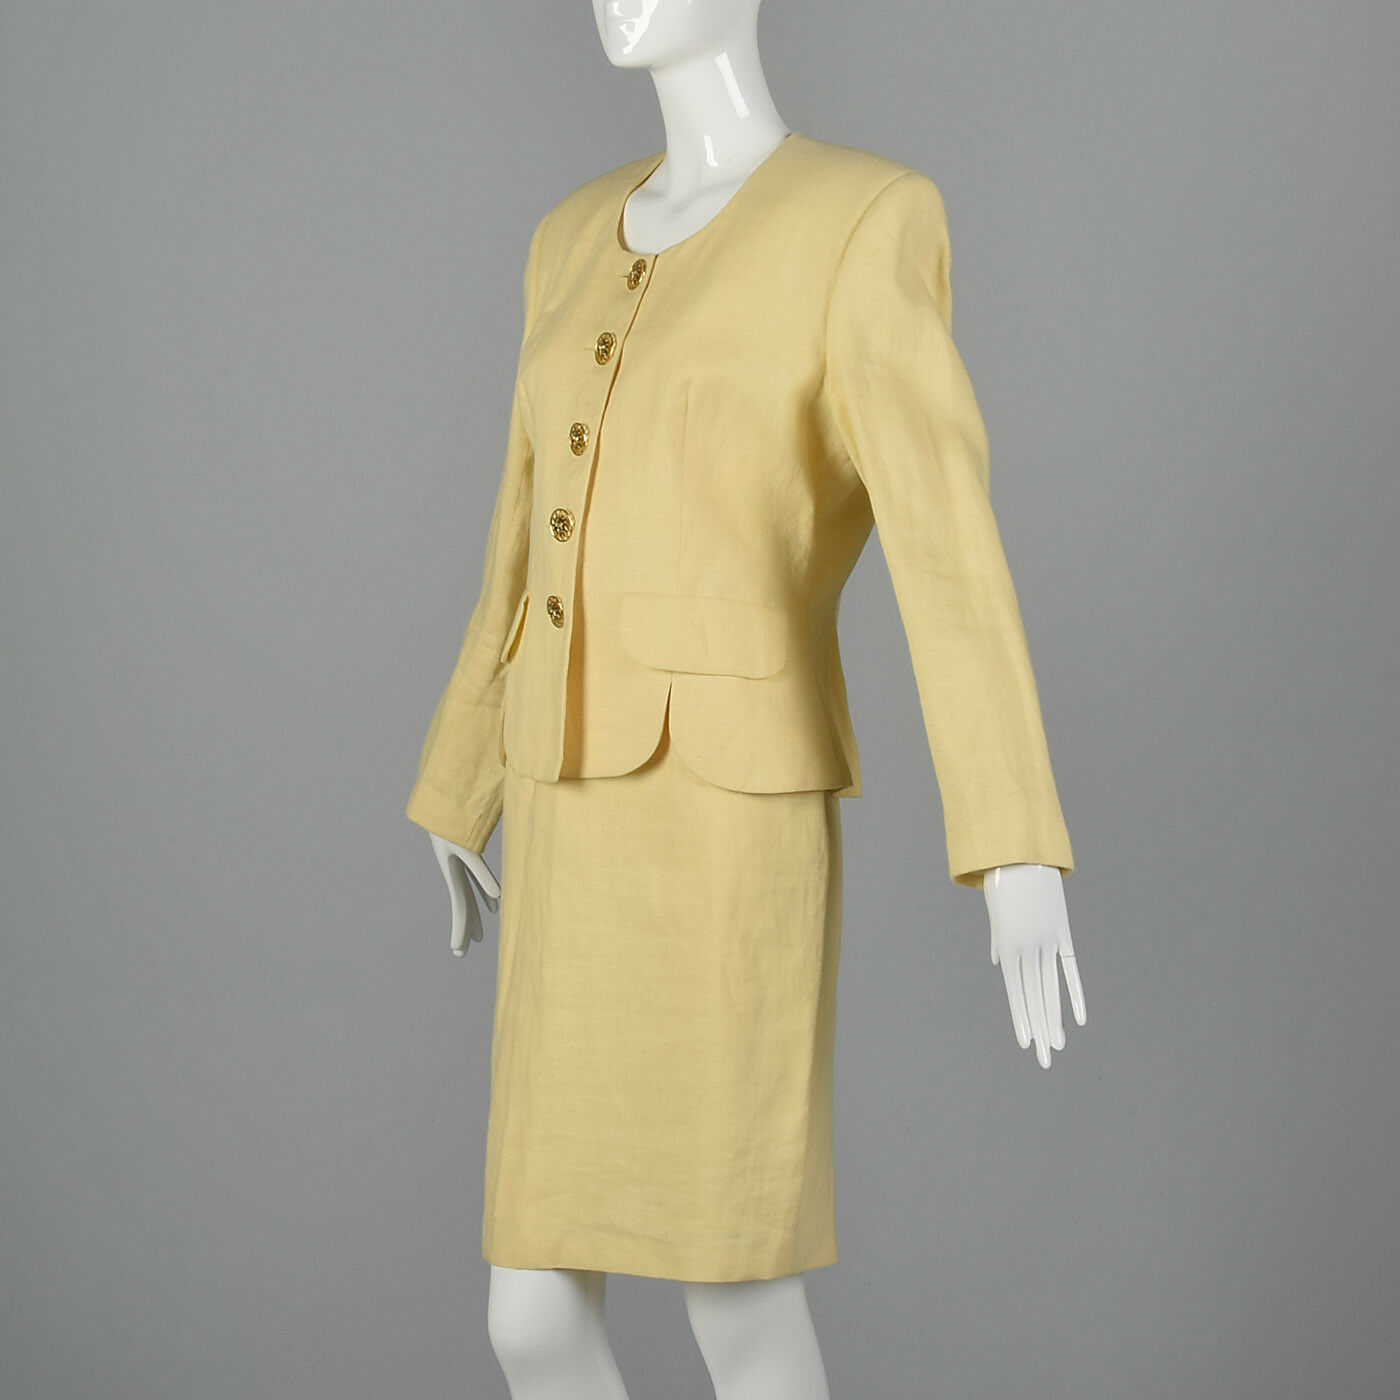 M 1990s Moschino Cheap & Chic Yellow Linen Suit S… - image 3